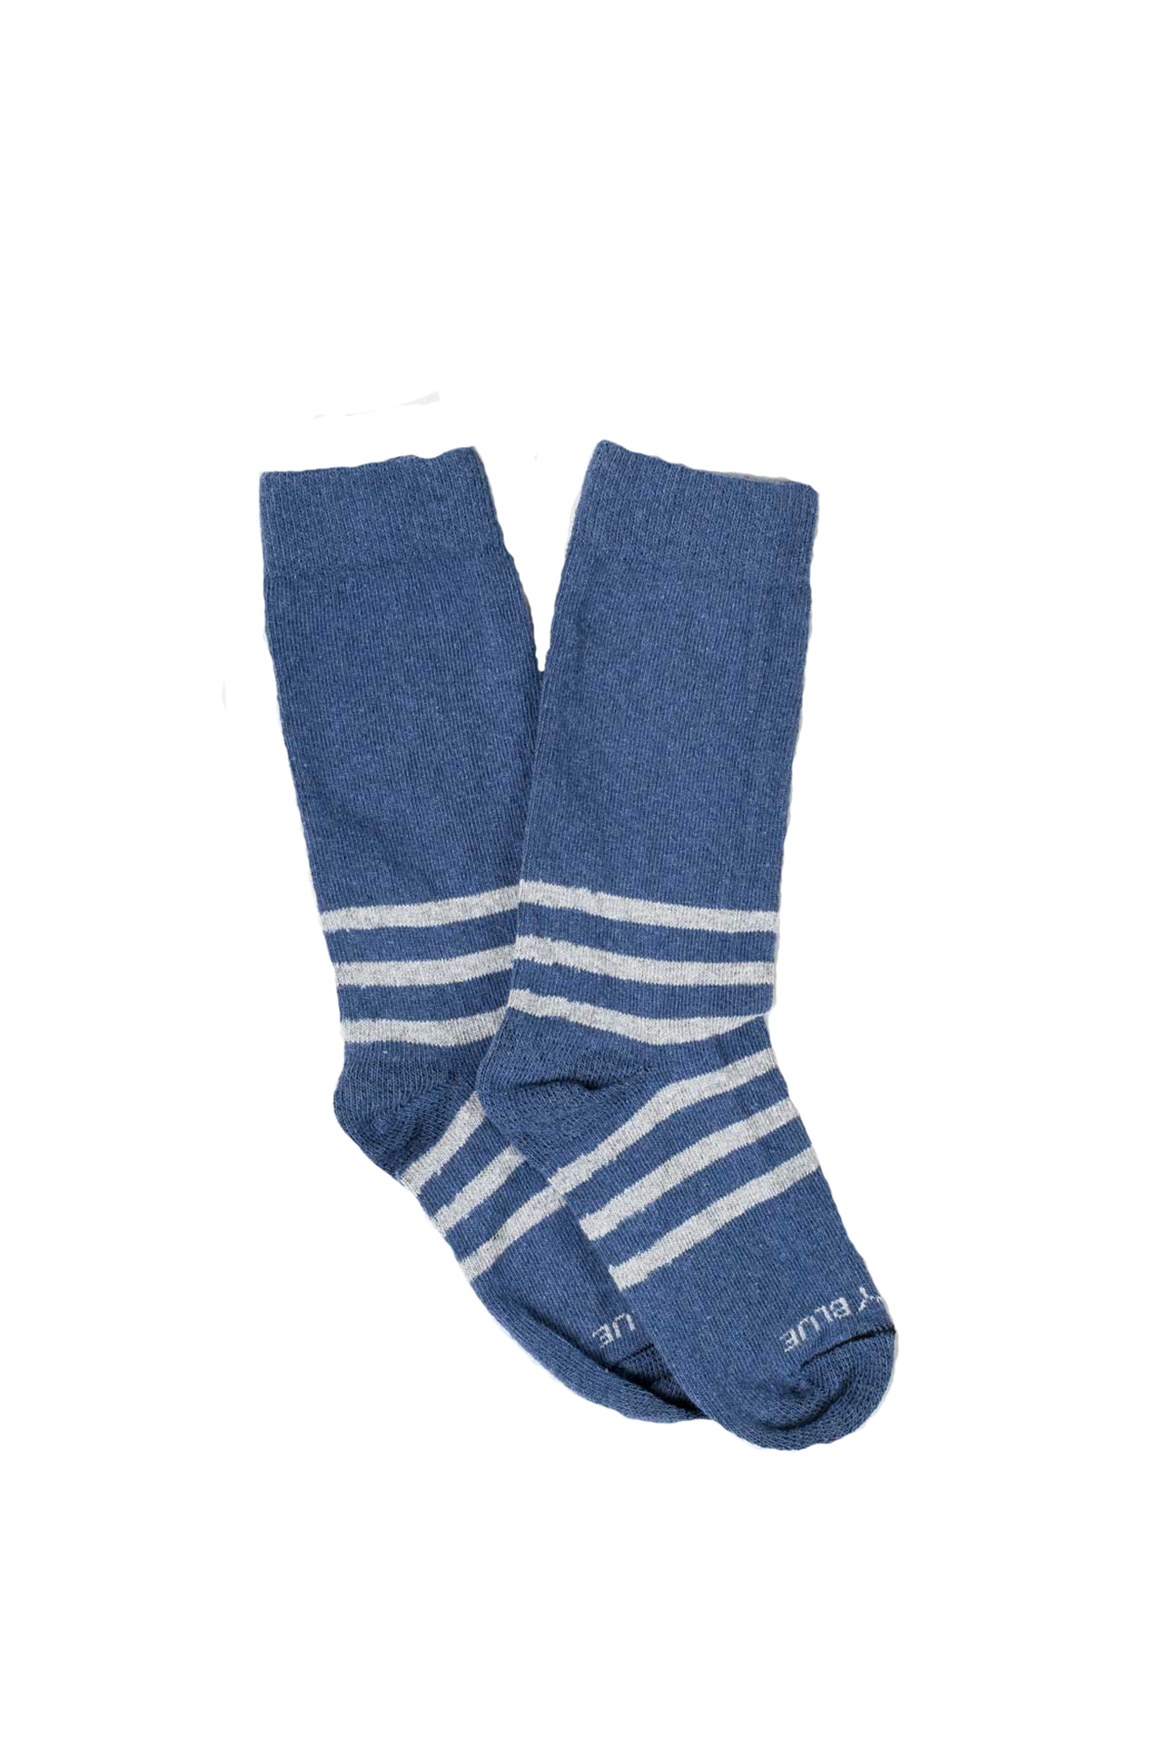 Bartrams Sock in Blue Stripe - Philistine